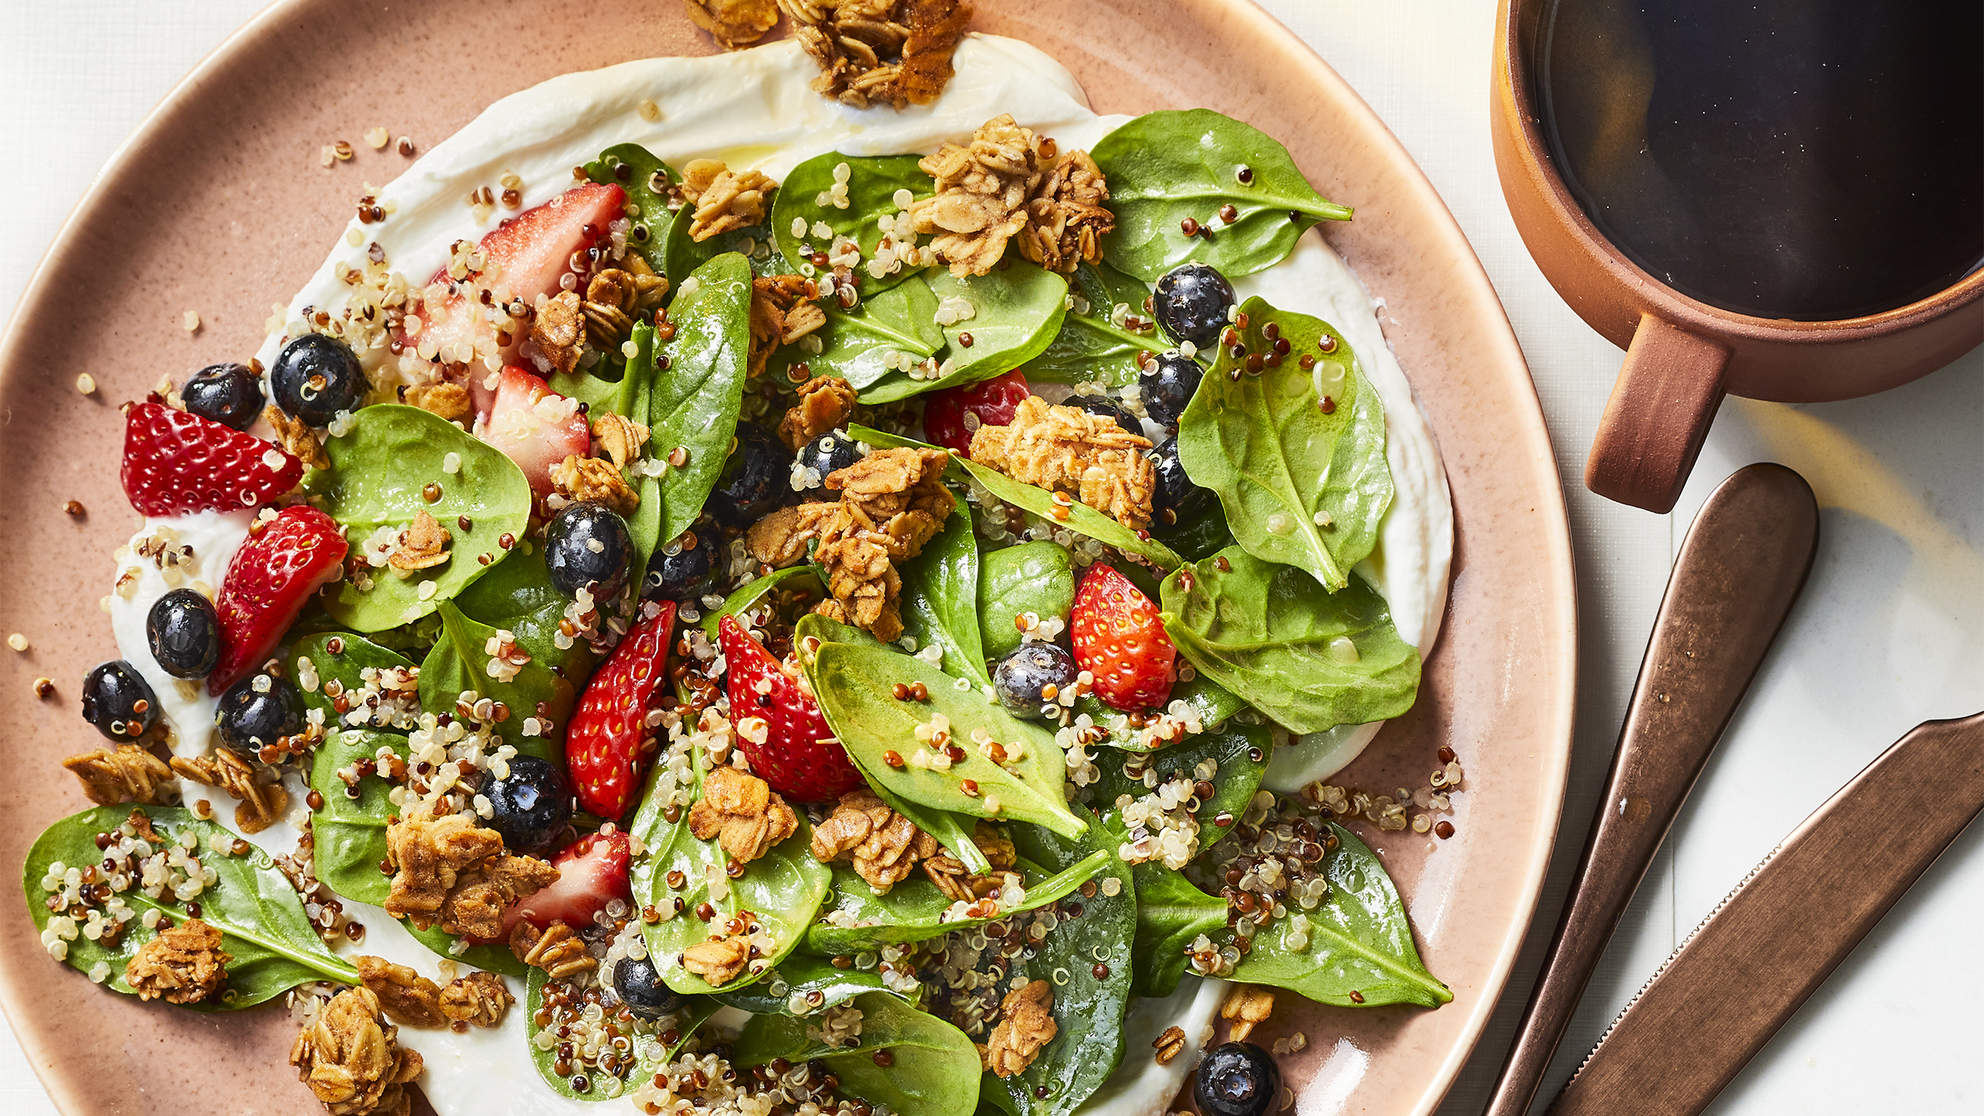 spinach-quinoa-berries-breakfast-salads-health-mag-april-2020